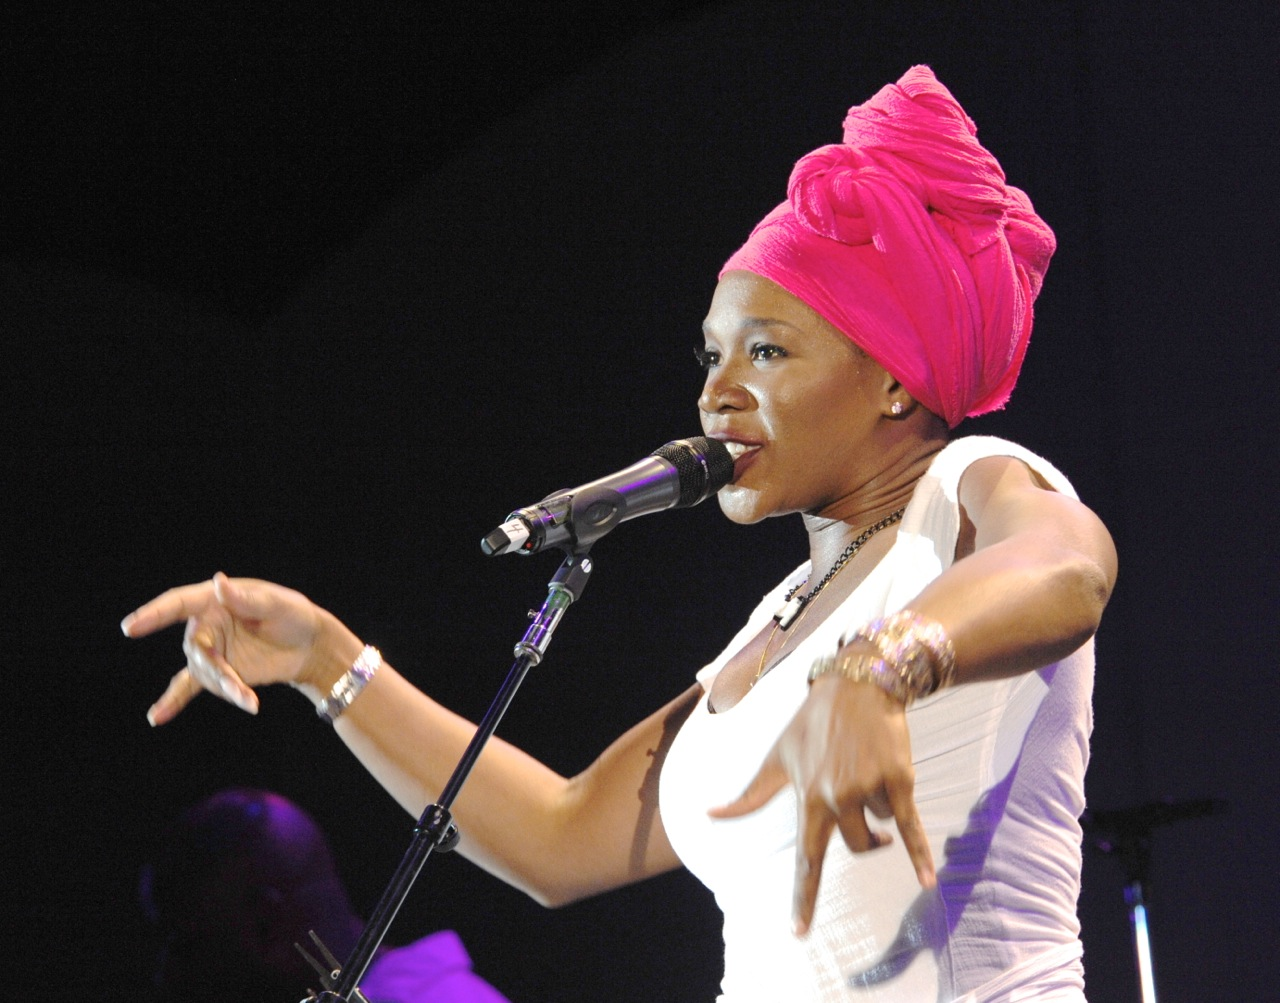 India Arie Performs Live, Talks 4 Year Absence & New Album